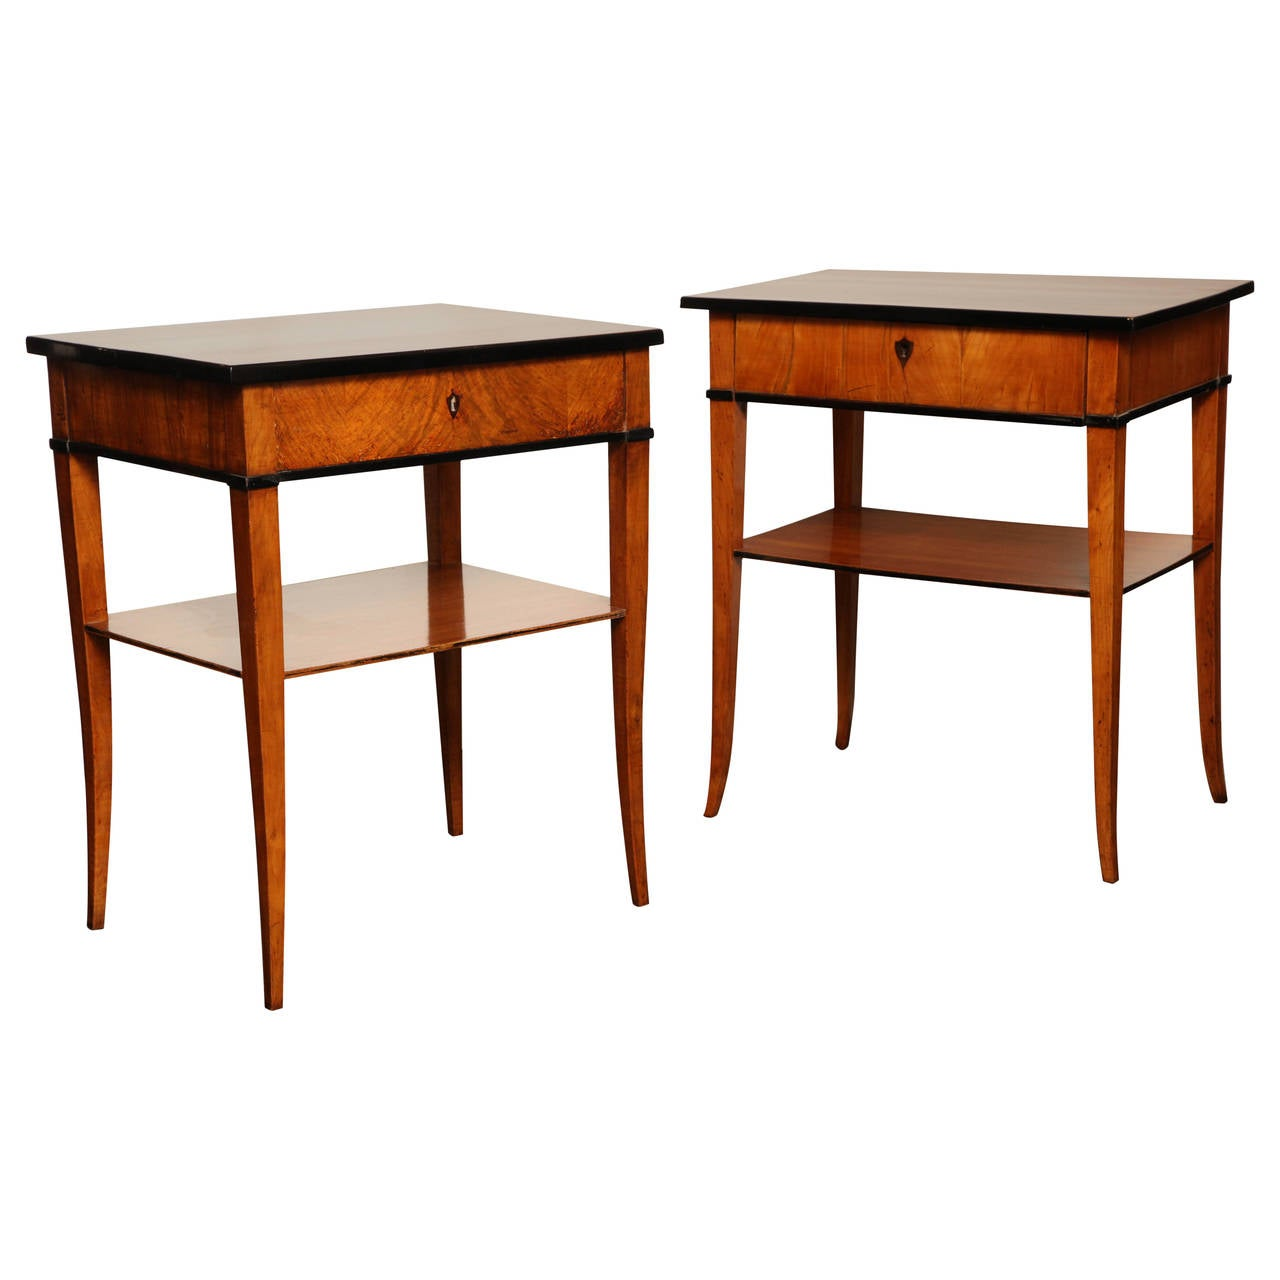 Two Similar Cherry Wood End Tables At 1stdibs